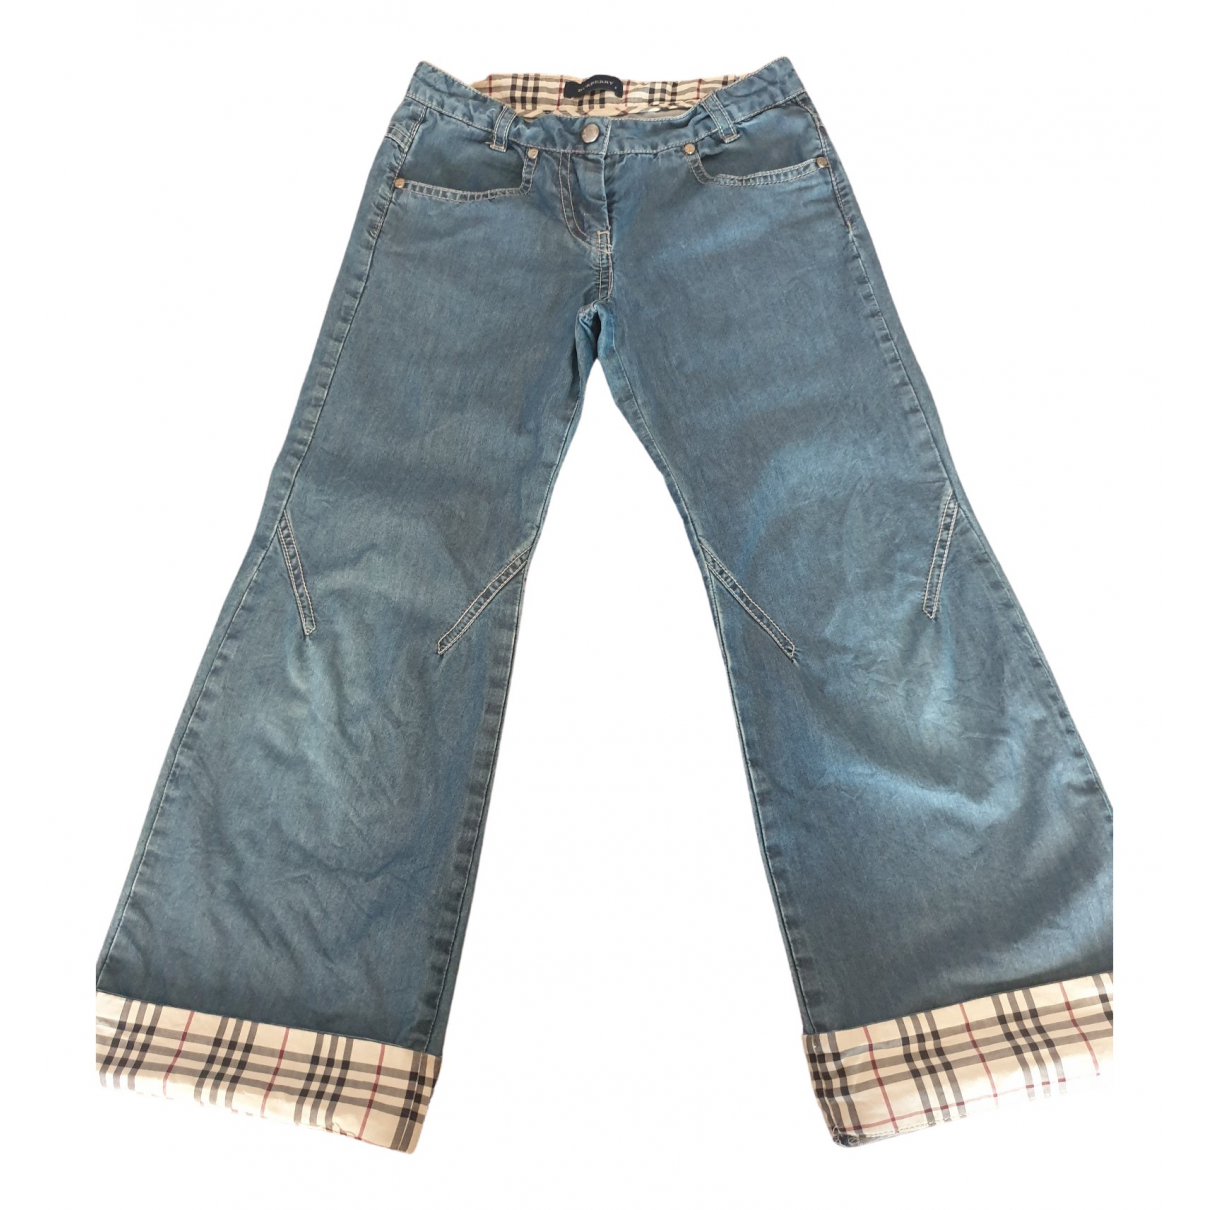 Burberry \N Blue Denim - Jeans Trousers for Kids 8 years - up to 128cm FR